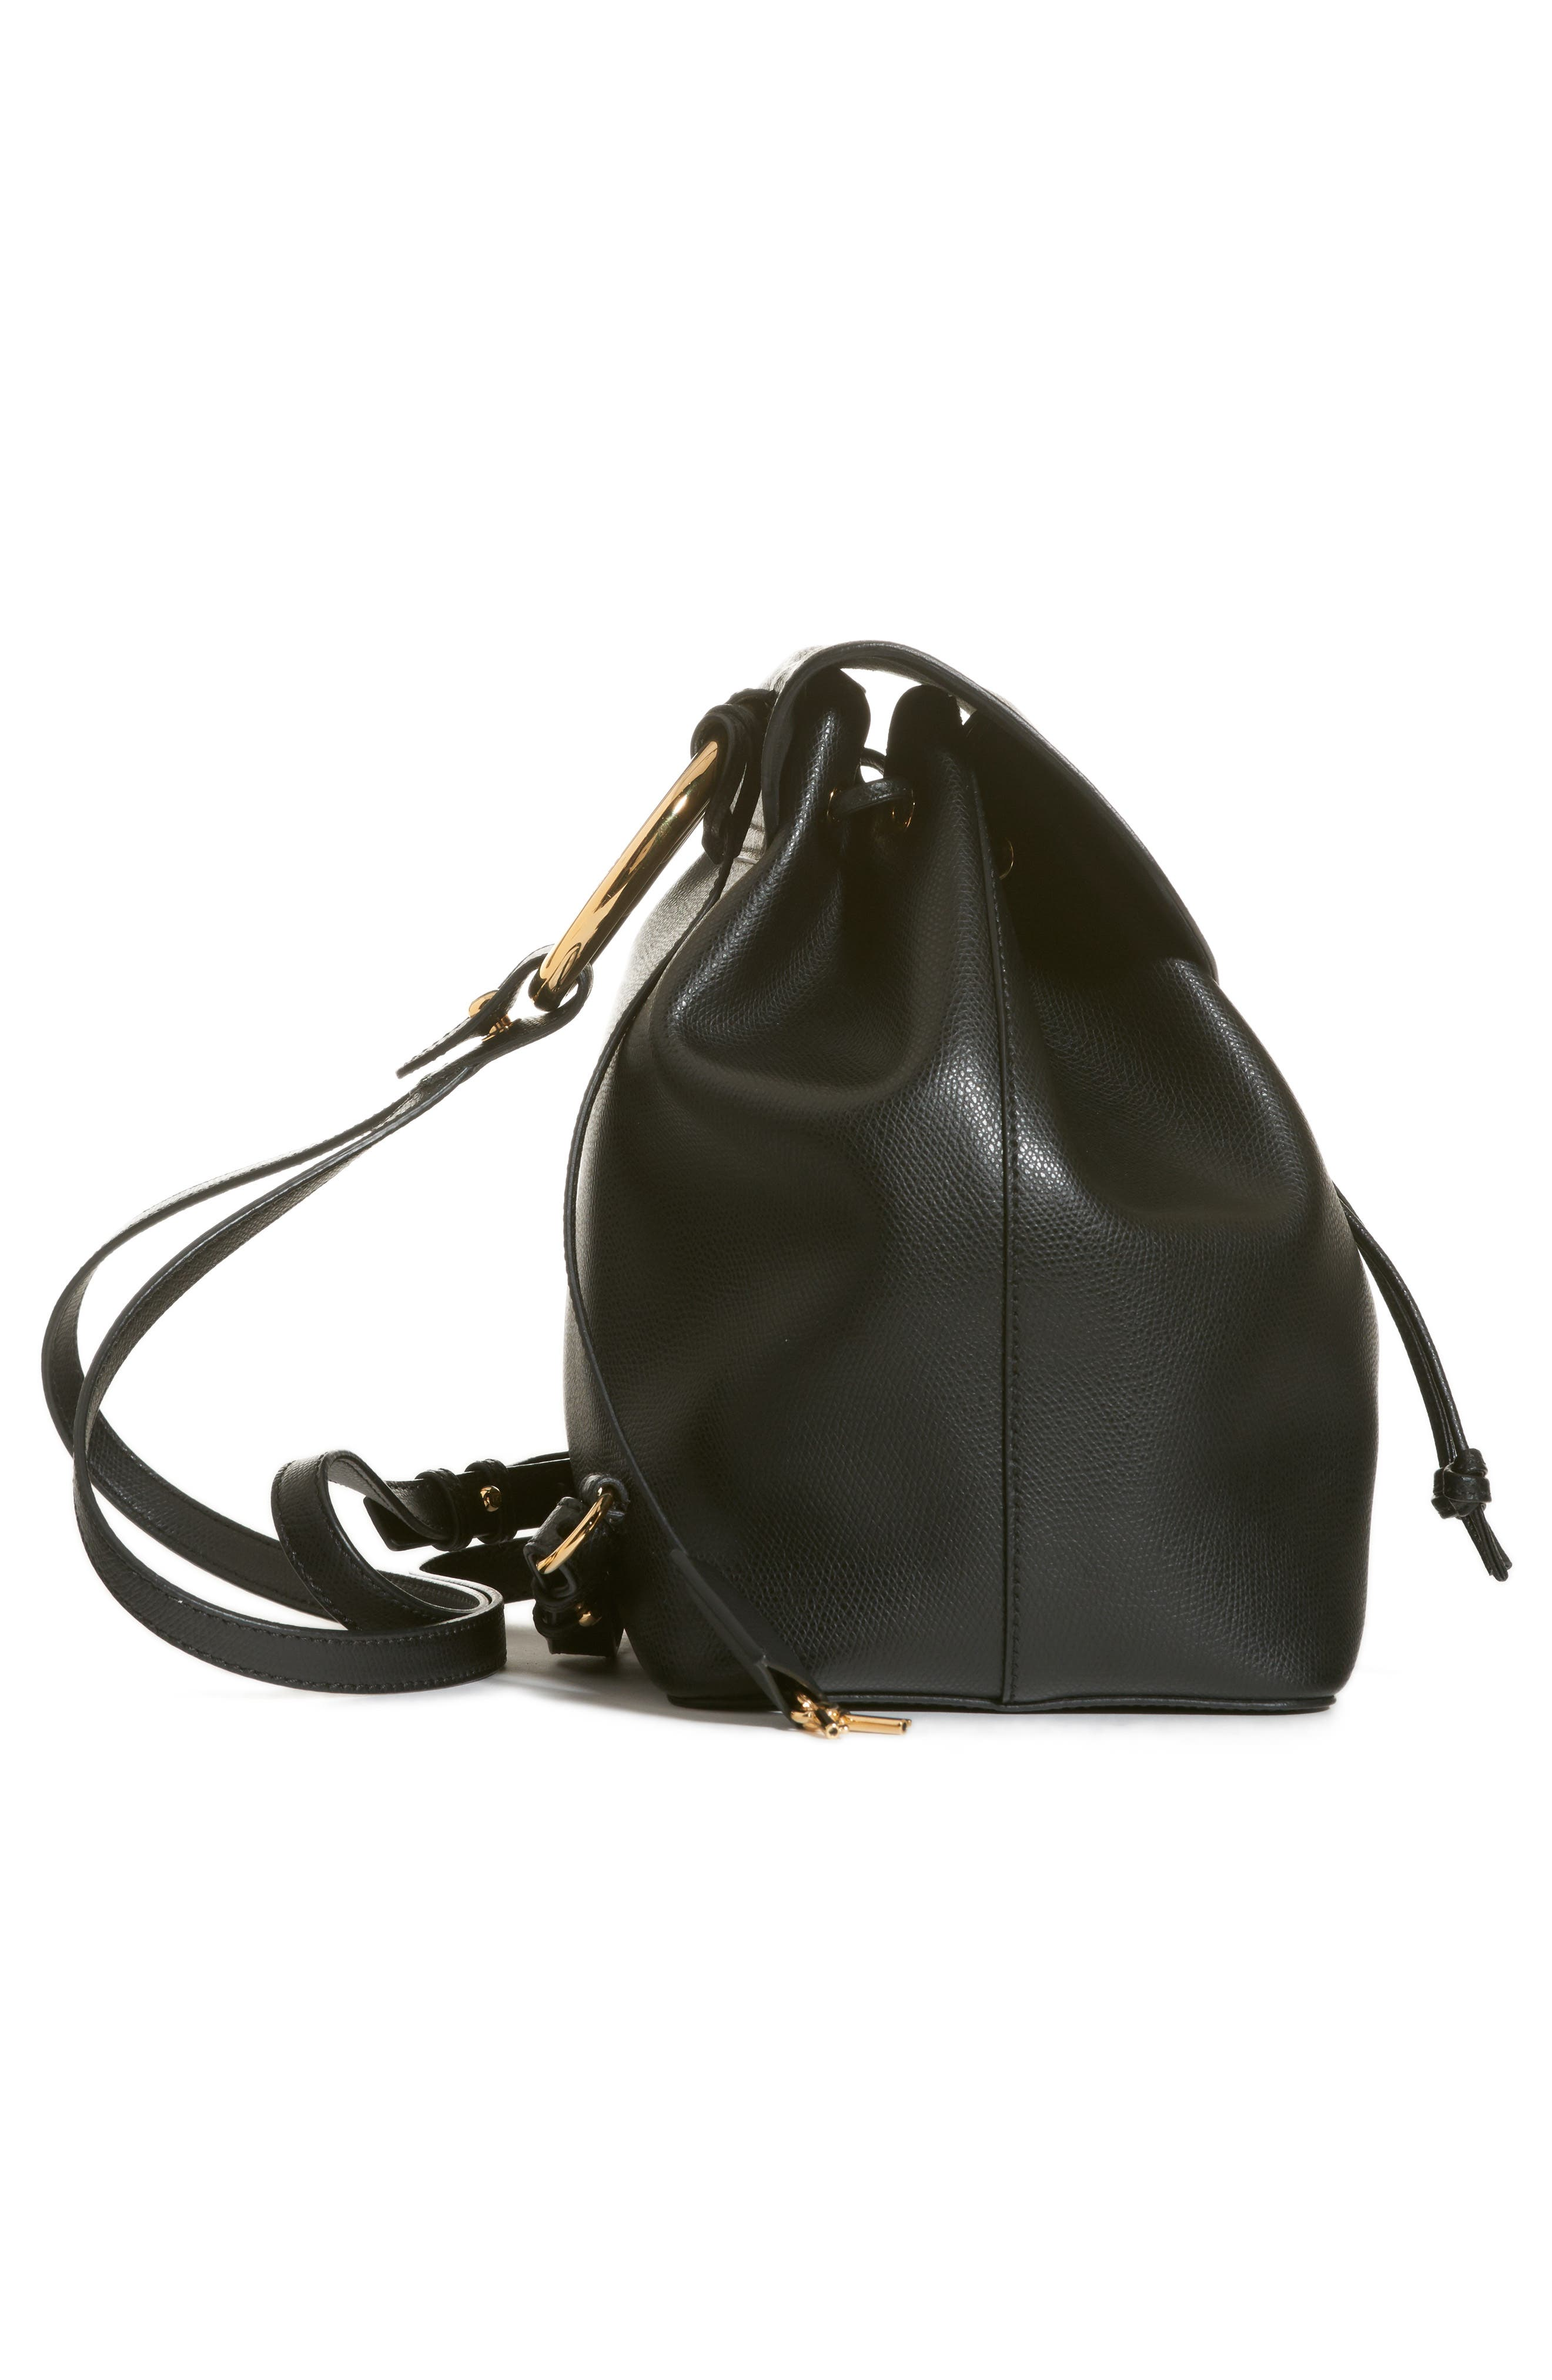 Cruise Calfskin Leather Backpack,                             Alternate thumbnail 4, color,                             006